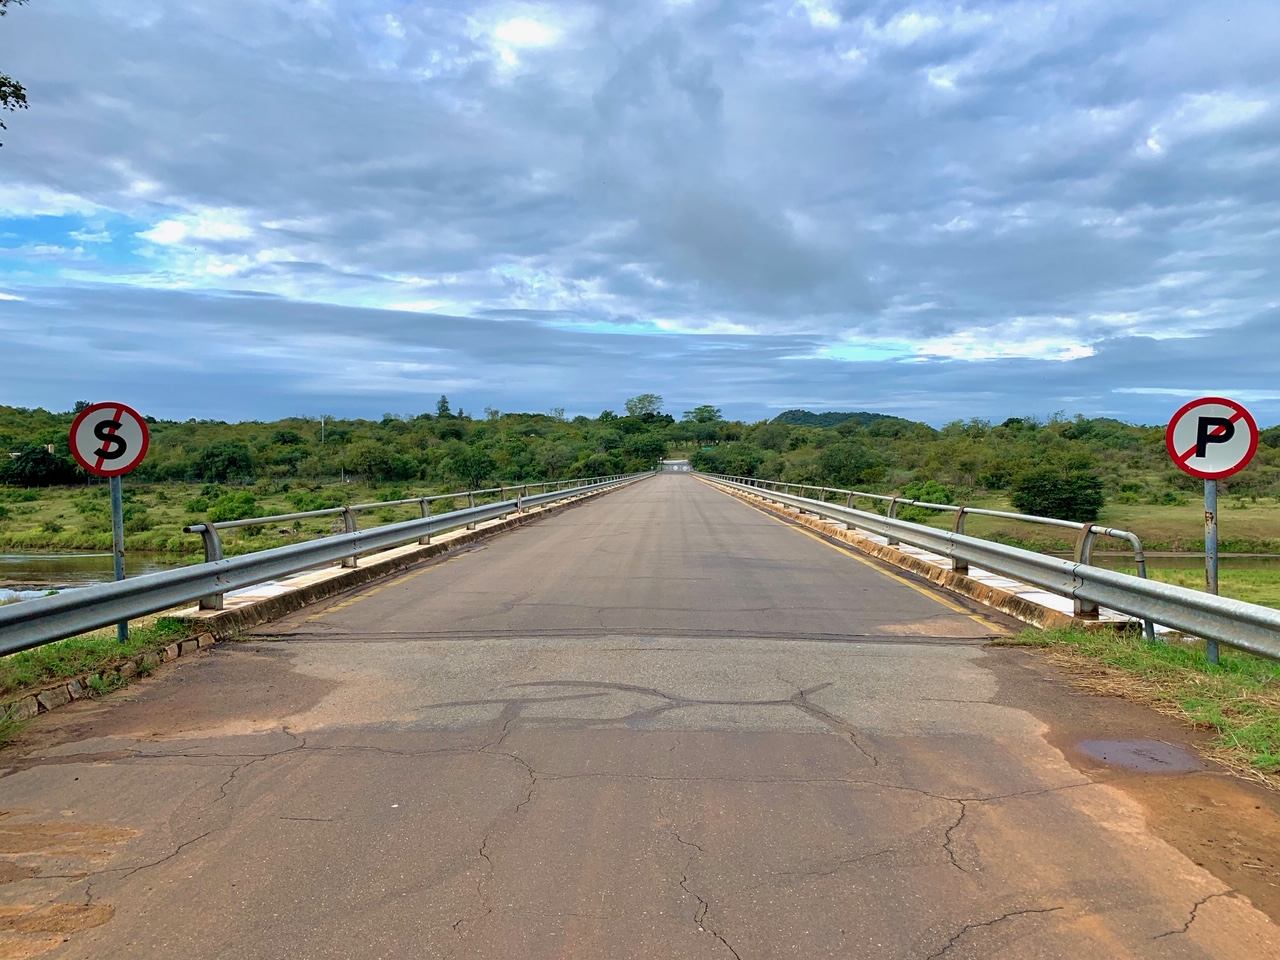 an empty bridge at Malalane Gate during the Corona virus pandemic